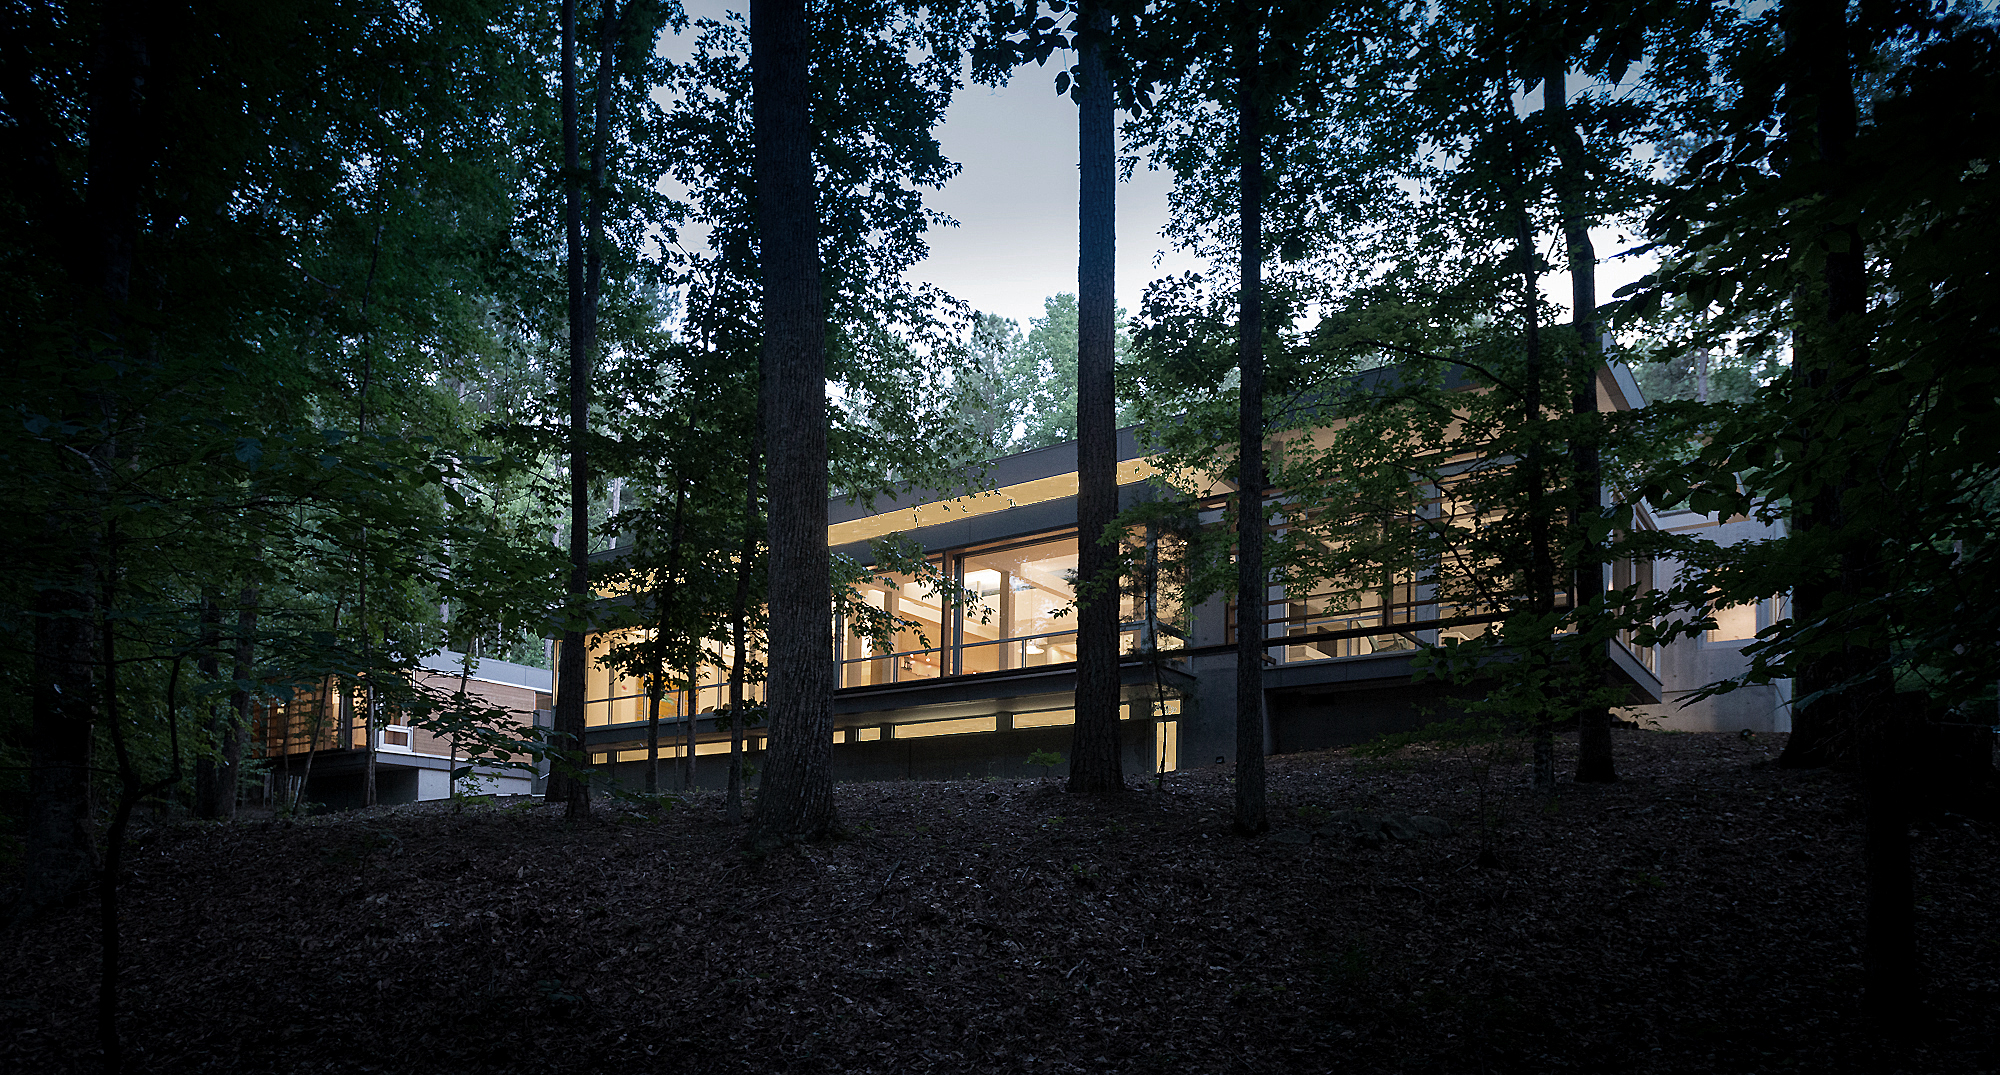 Bugg House   Durham, North Carolina   Architect:  HA    Program:   A 4,500sf (450m2) private residence is located in a heavily wooded, eight acre sight facing a stream to the north. The house is organized as a series of 4 pavilions: living/dining, master bedroom, guest bedrooms (2), and a garage/storage. The pavilions are connected by glass enclosed corridors. The services spaces are expressed as cast in place concrete volumes.   Client:   Withheld